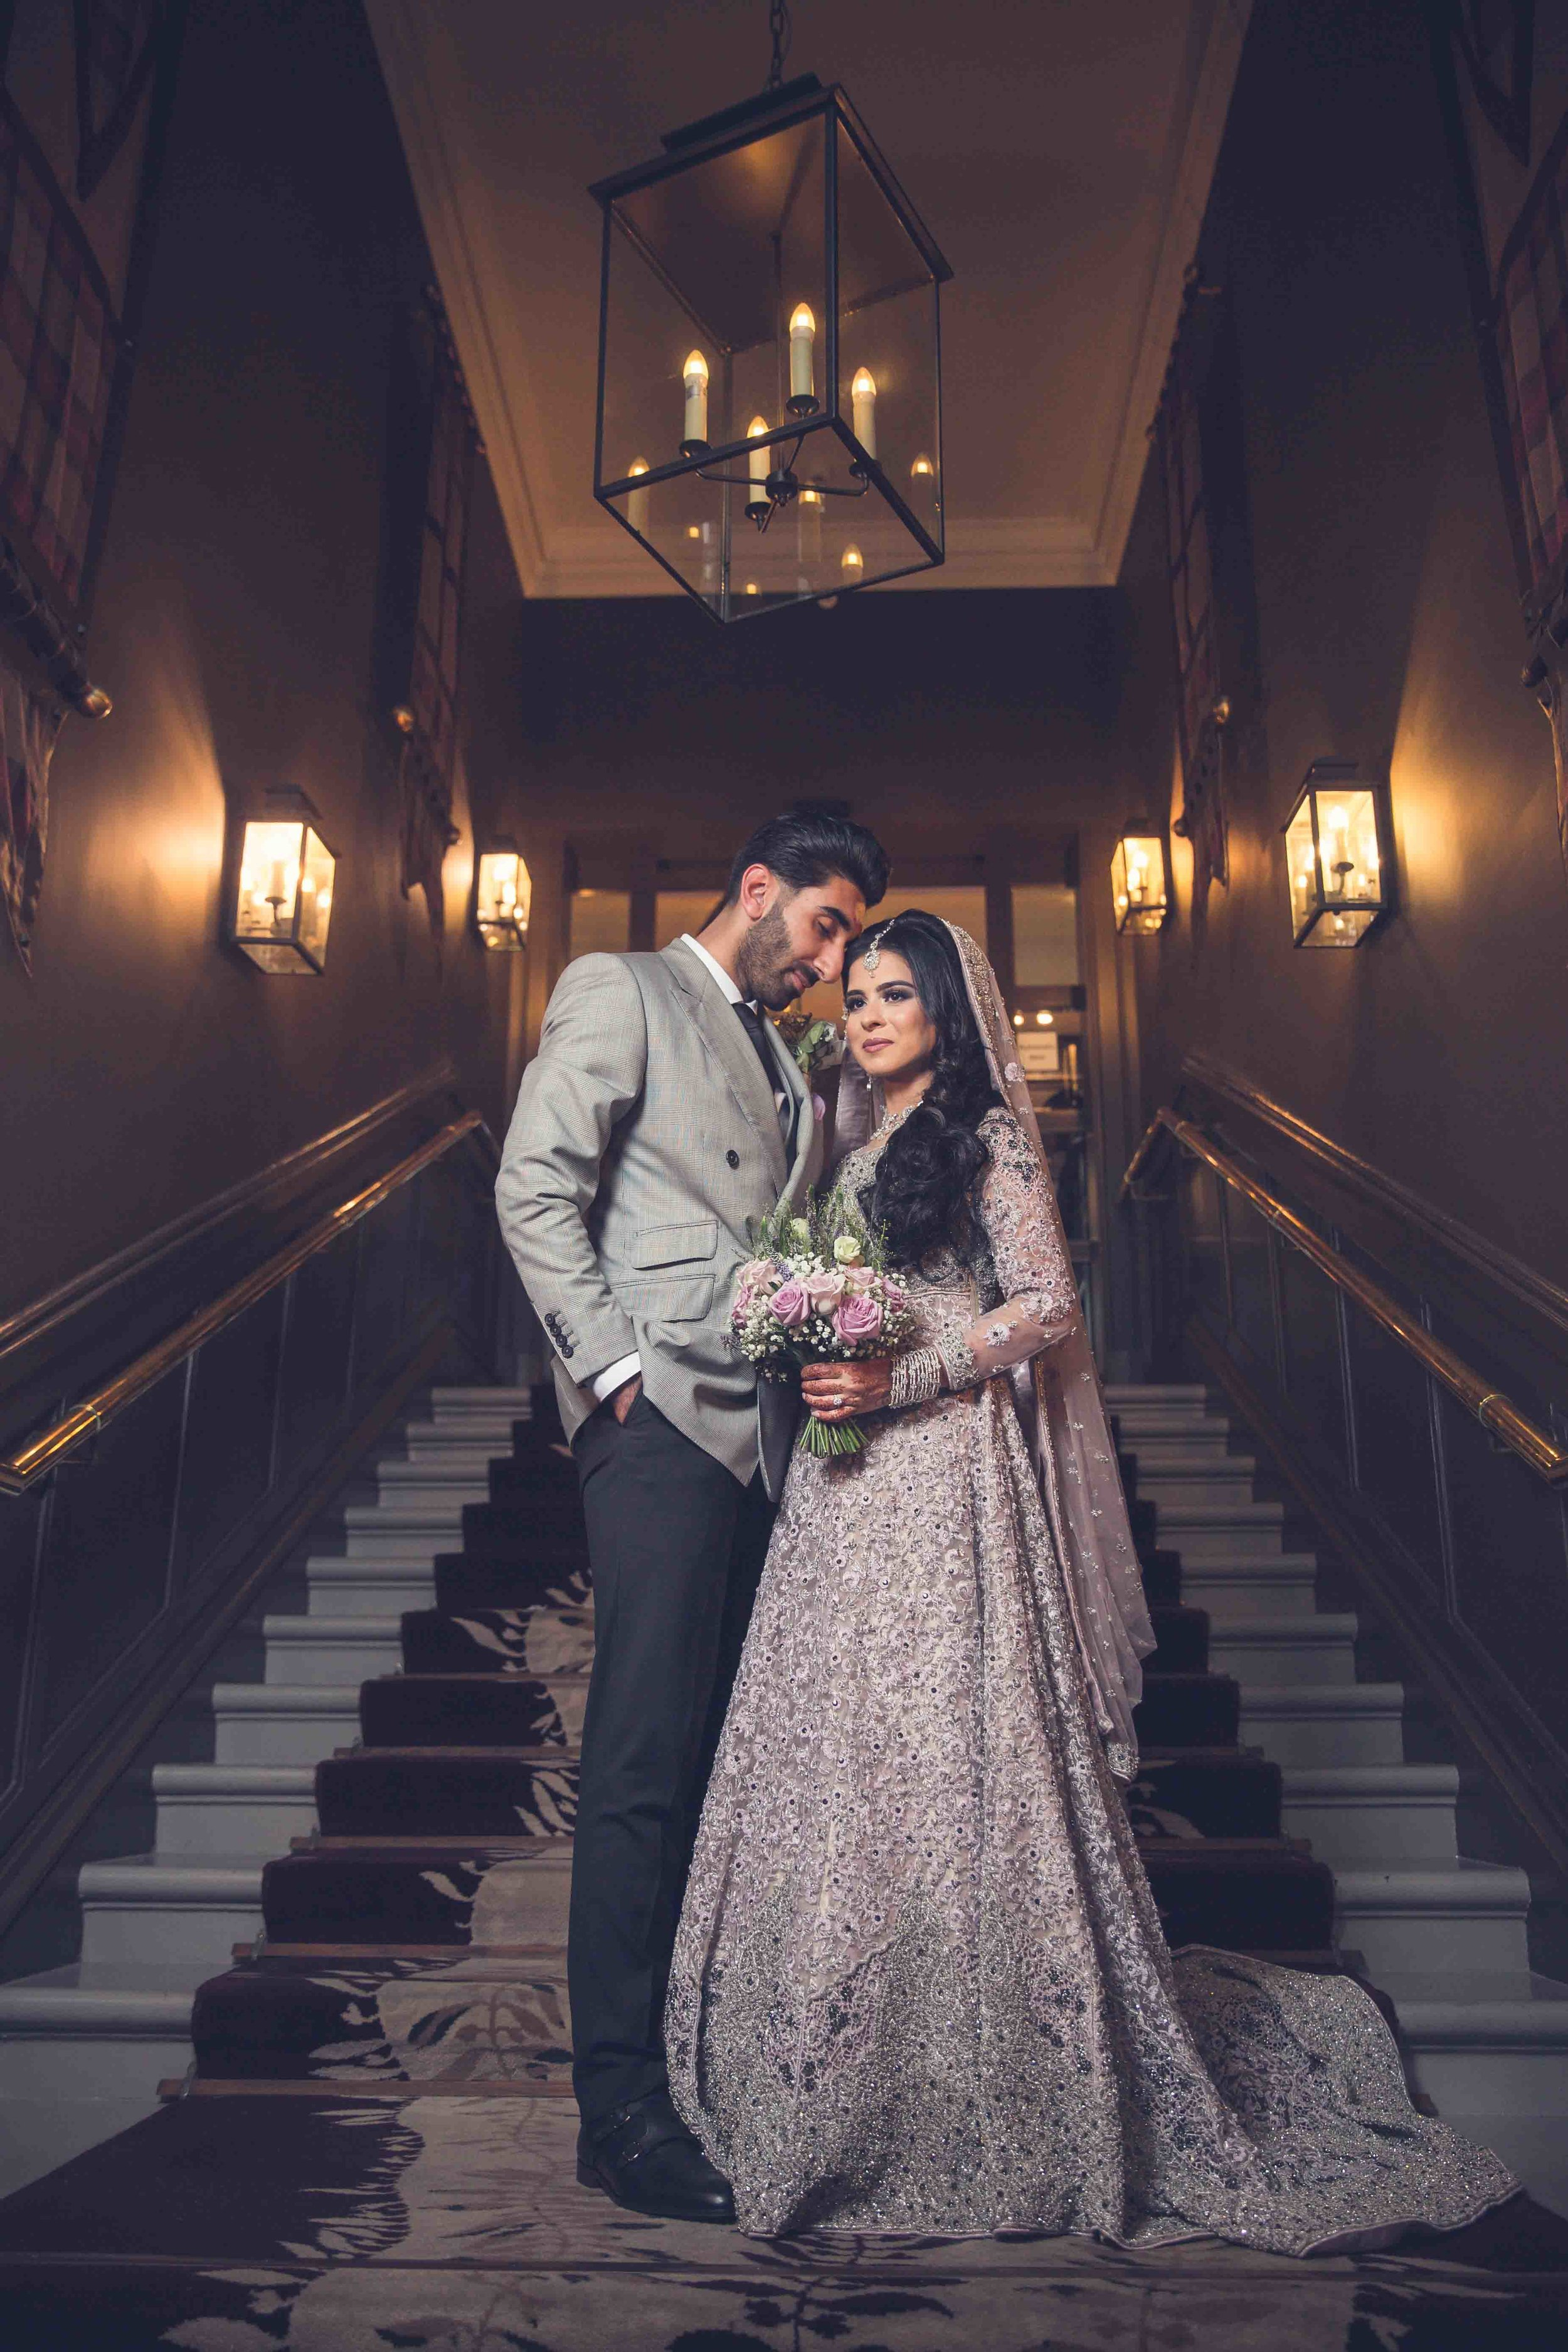 Opu Sultan Photography Asian wedding photography scotland edinburgh glasgow manchester birmingham london-293.jpg